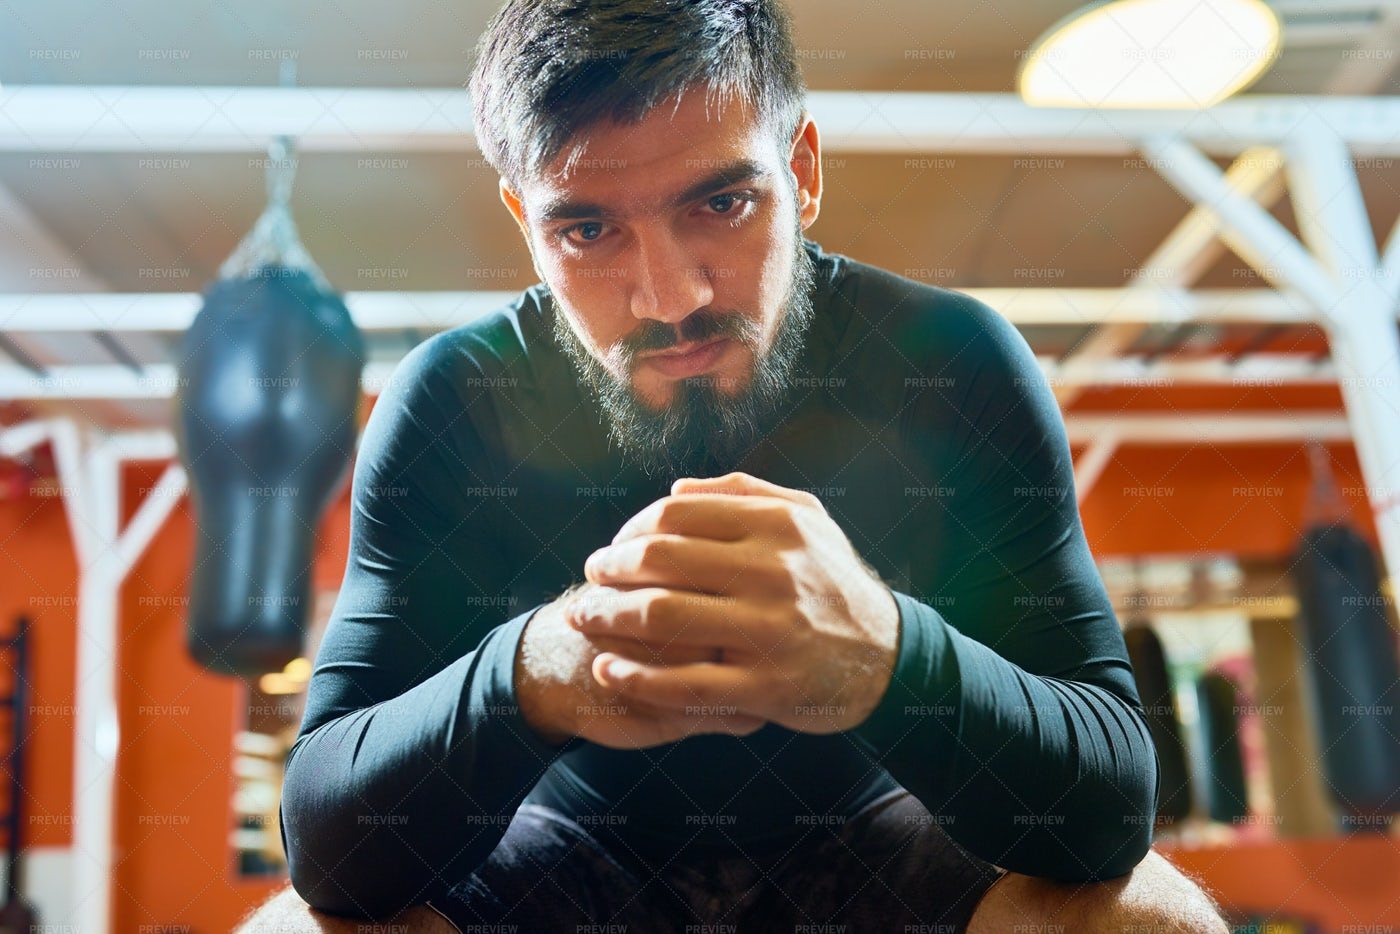 Brutal Bearded Sportsman In Boxing...: Stock Photos